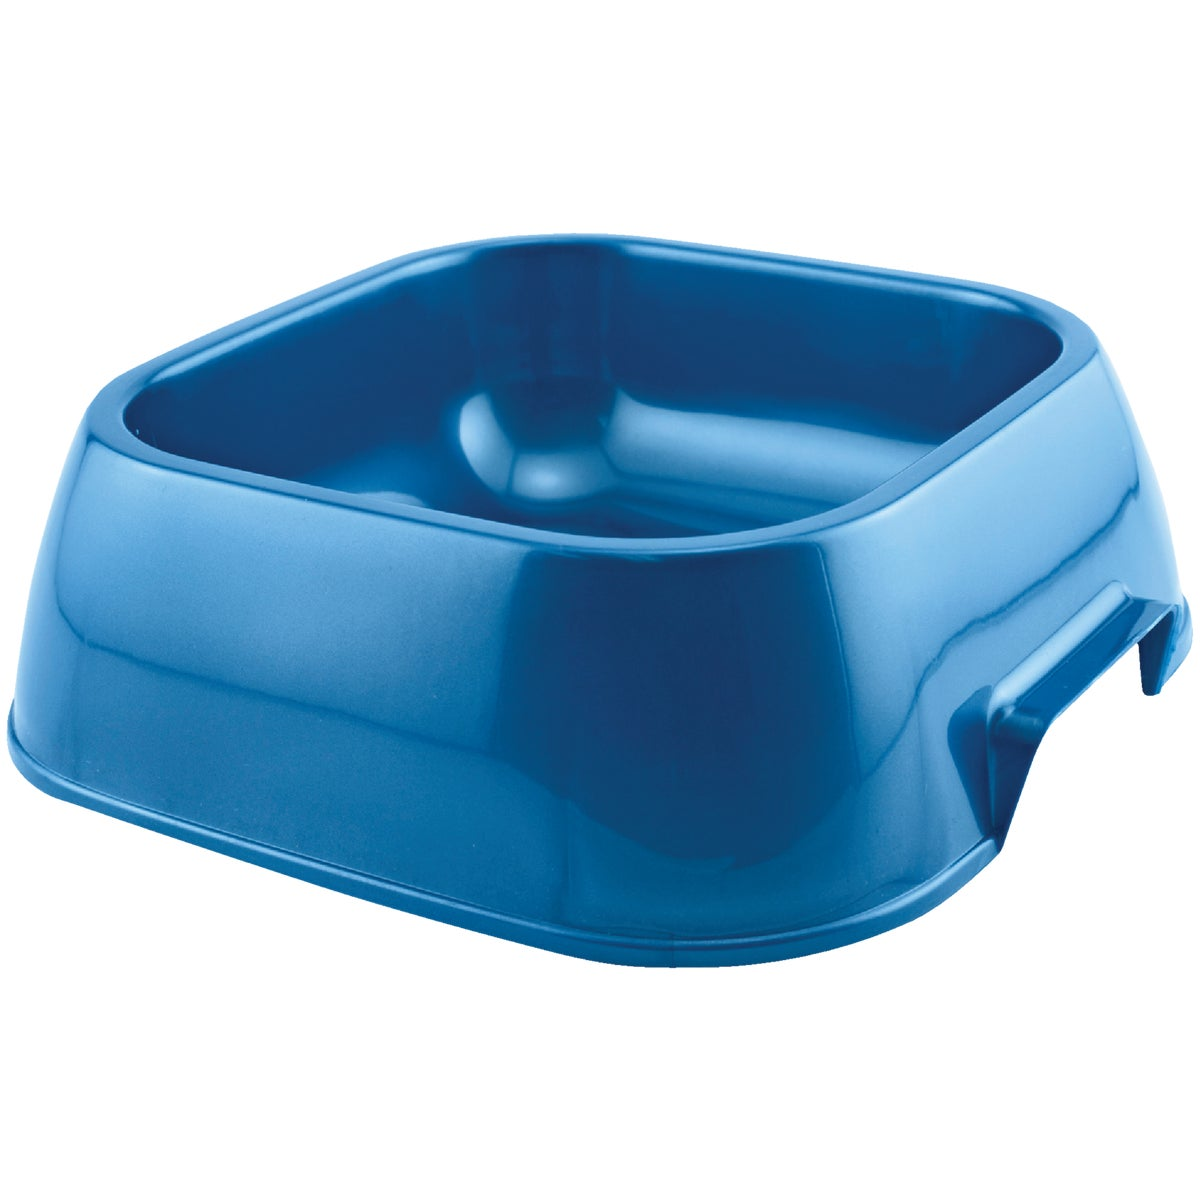 LARGE PLASTIC DOG DISH - 00303 by Westminster Pet